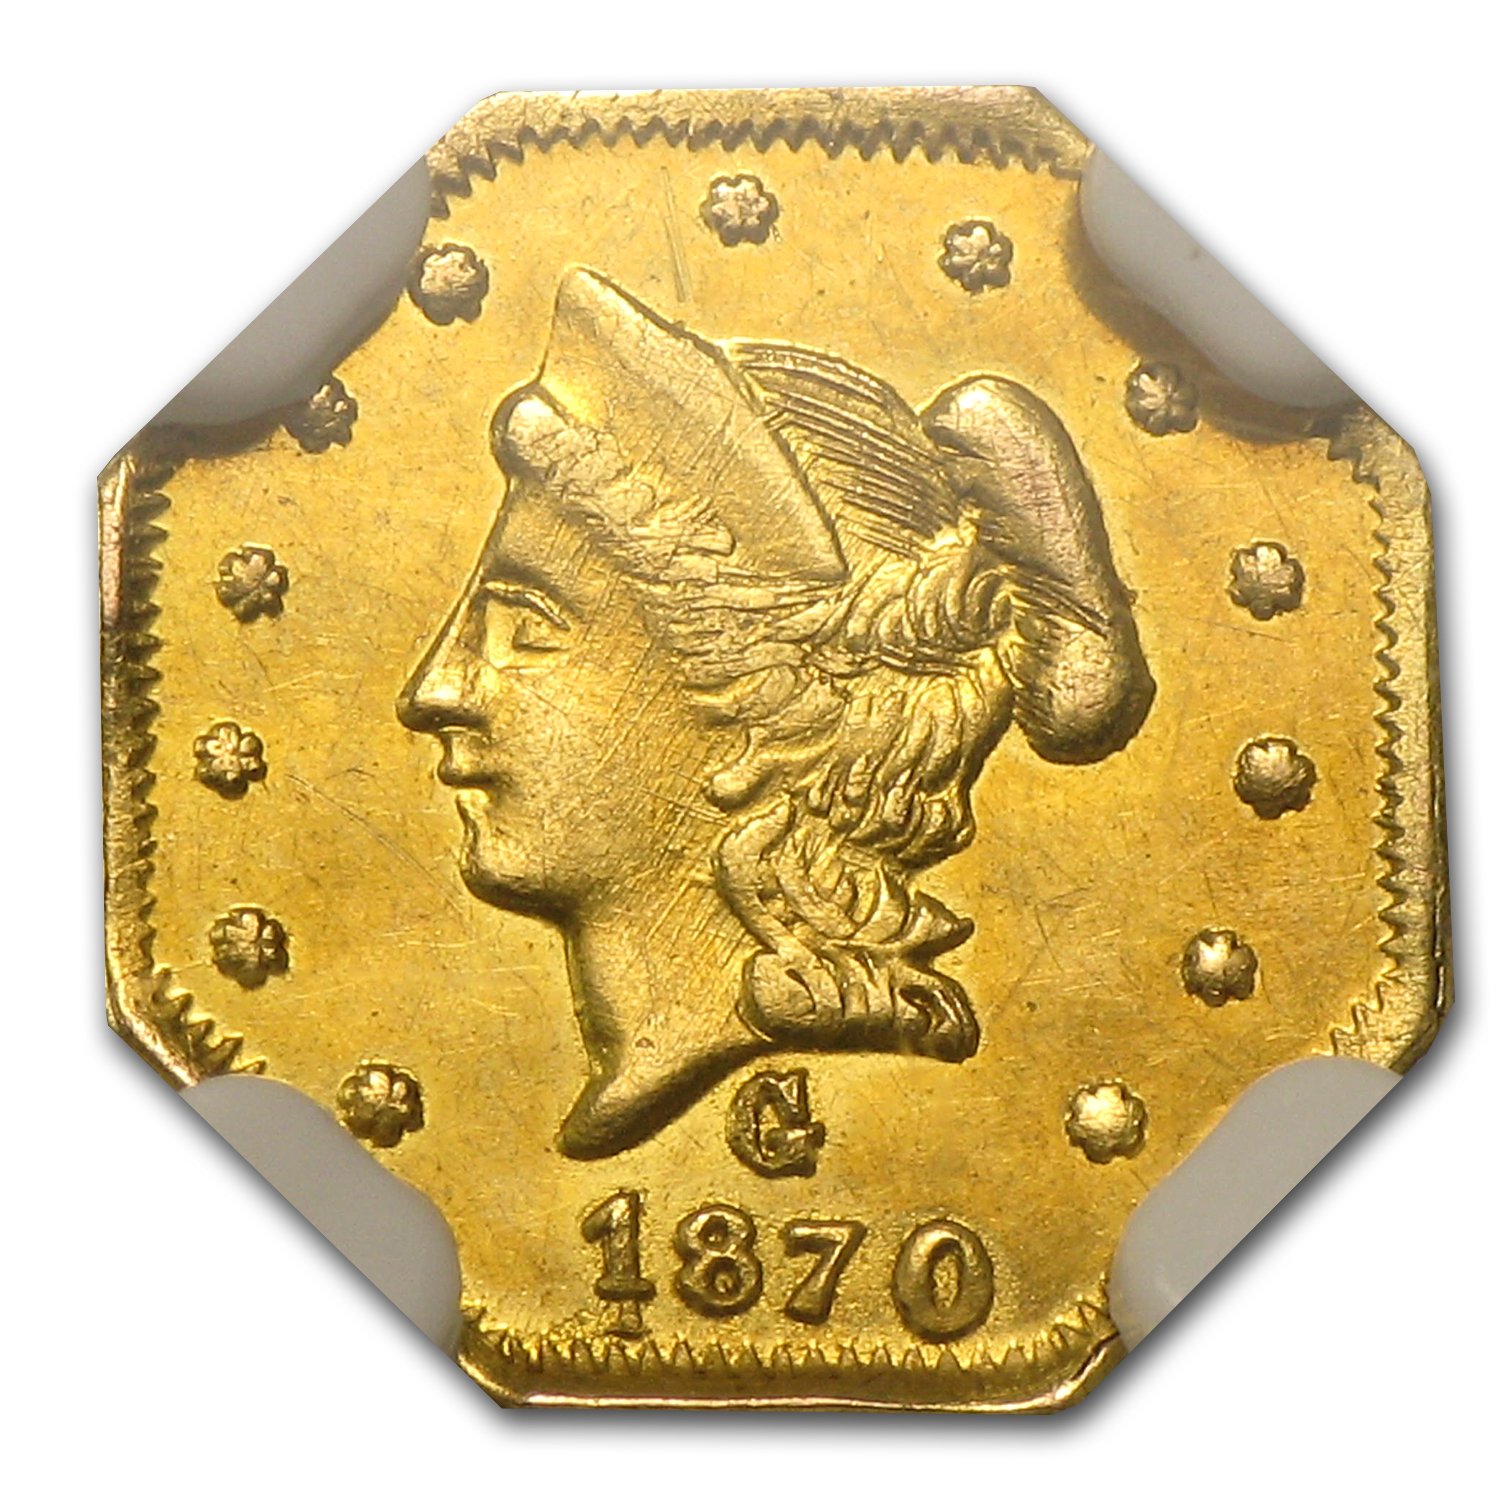 1870 BG-922 Liberty Octagonal 50 Cent Gold UNC - Scratches NGC